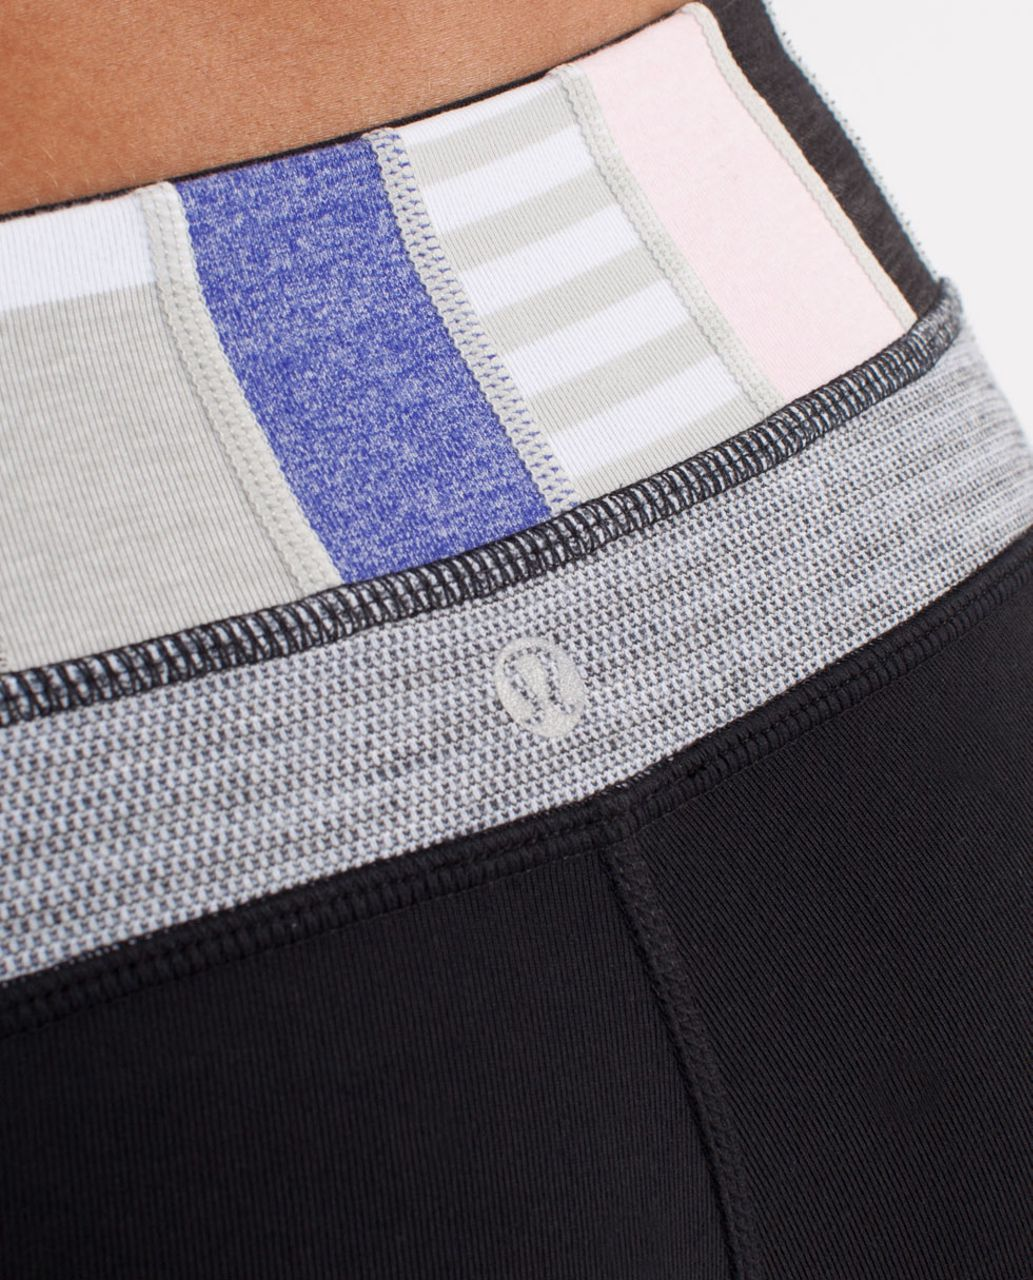 Lululemon Groove Pant (Tall) - Black /  Quilting Winter 19 /  Deep Coal Silver Spoon Pique